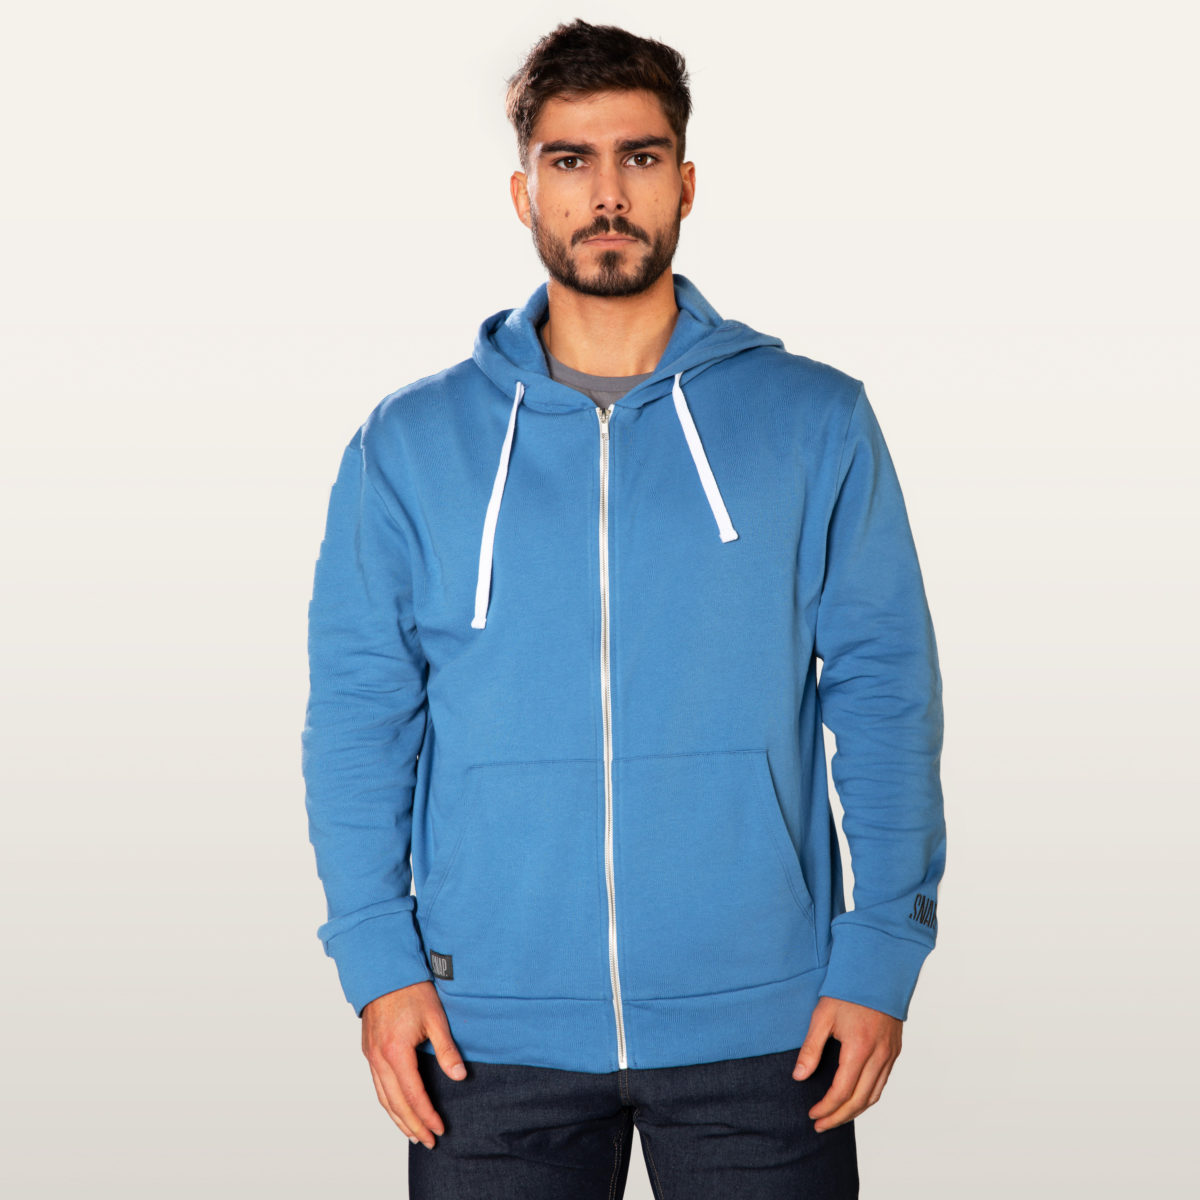 blue hoody for men and women